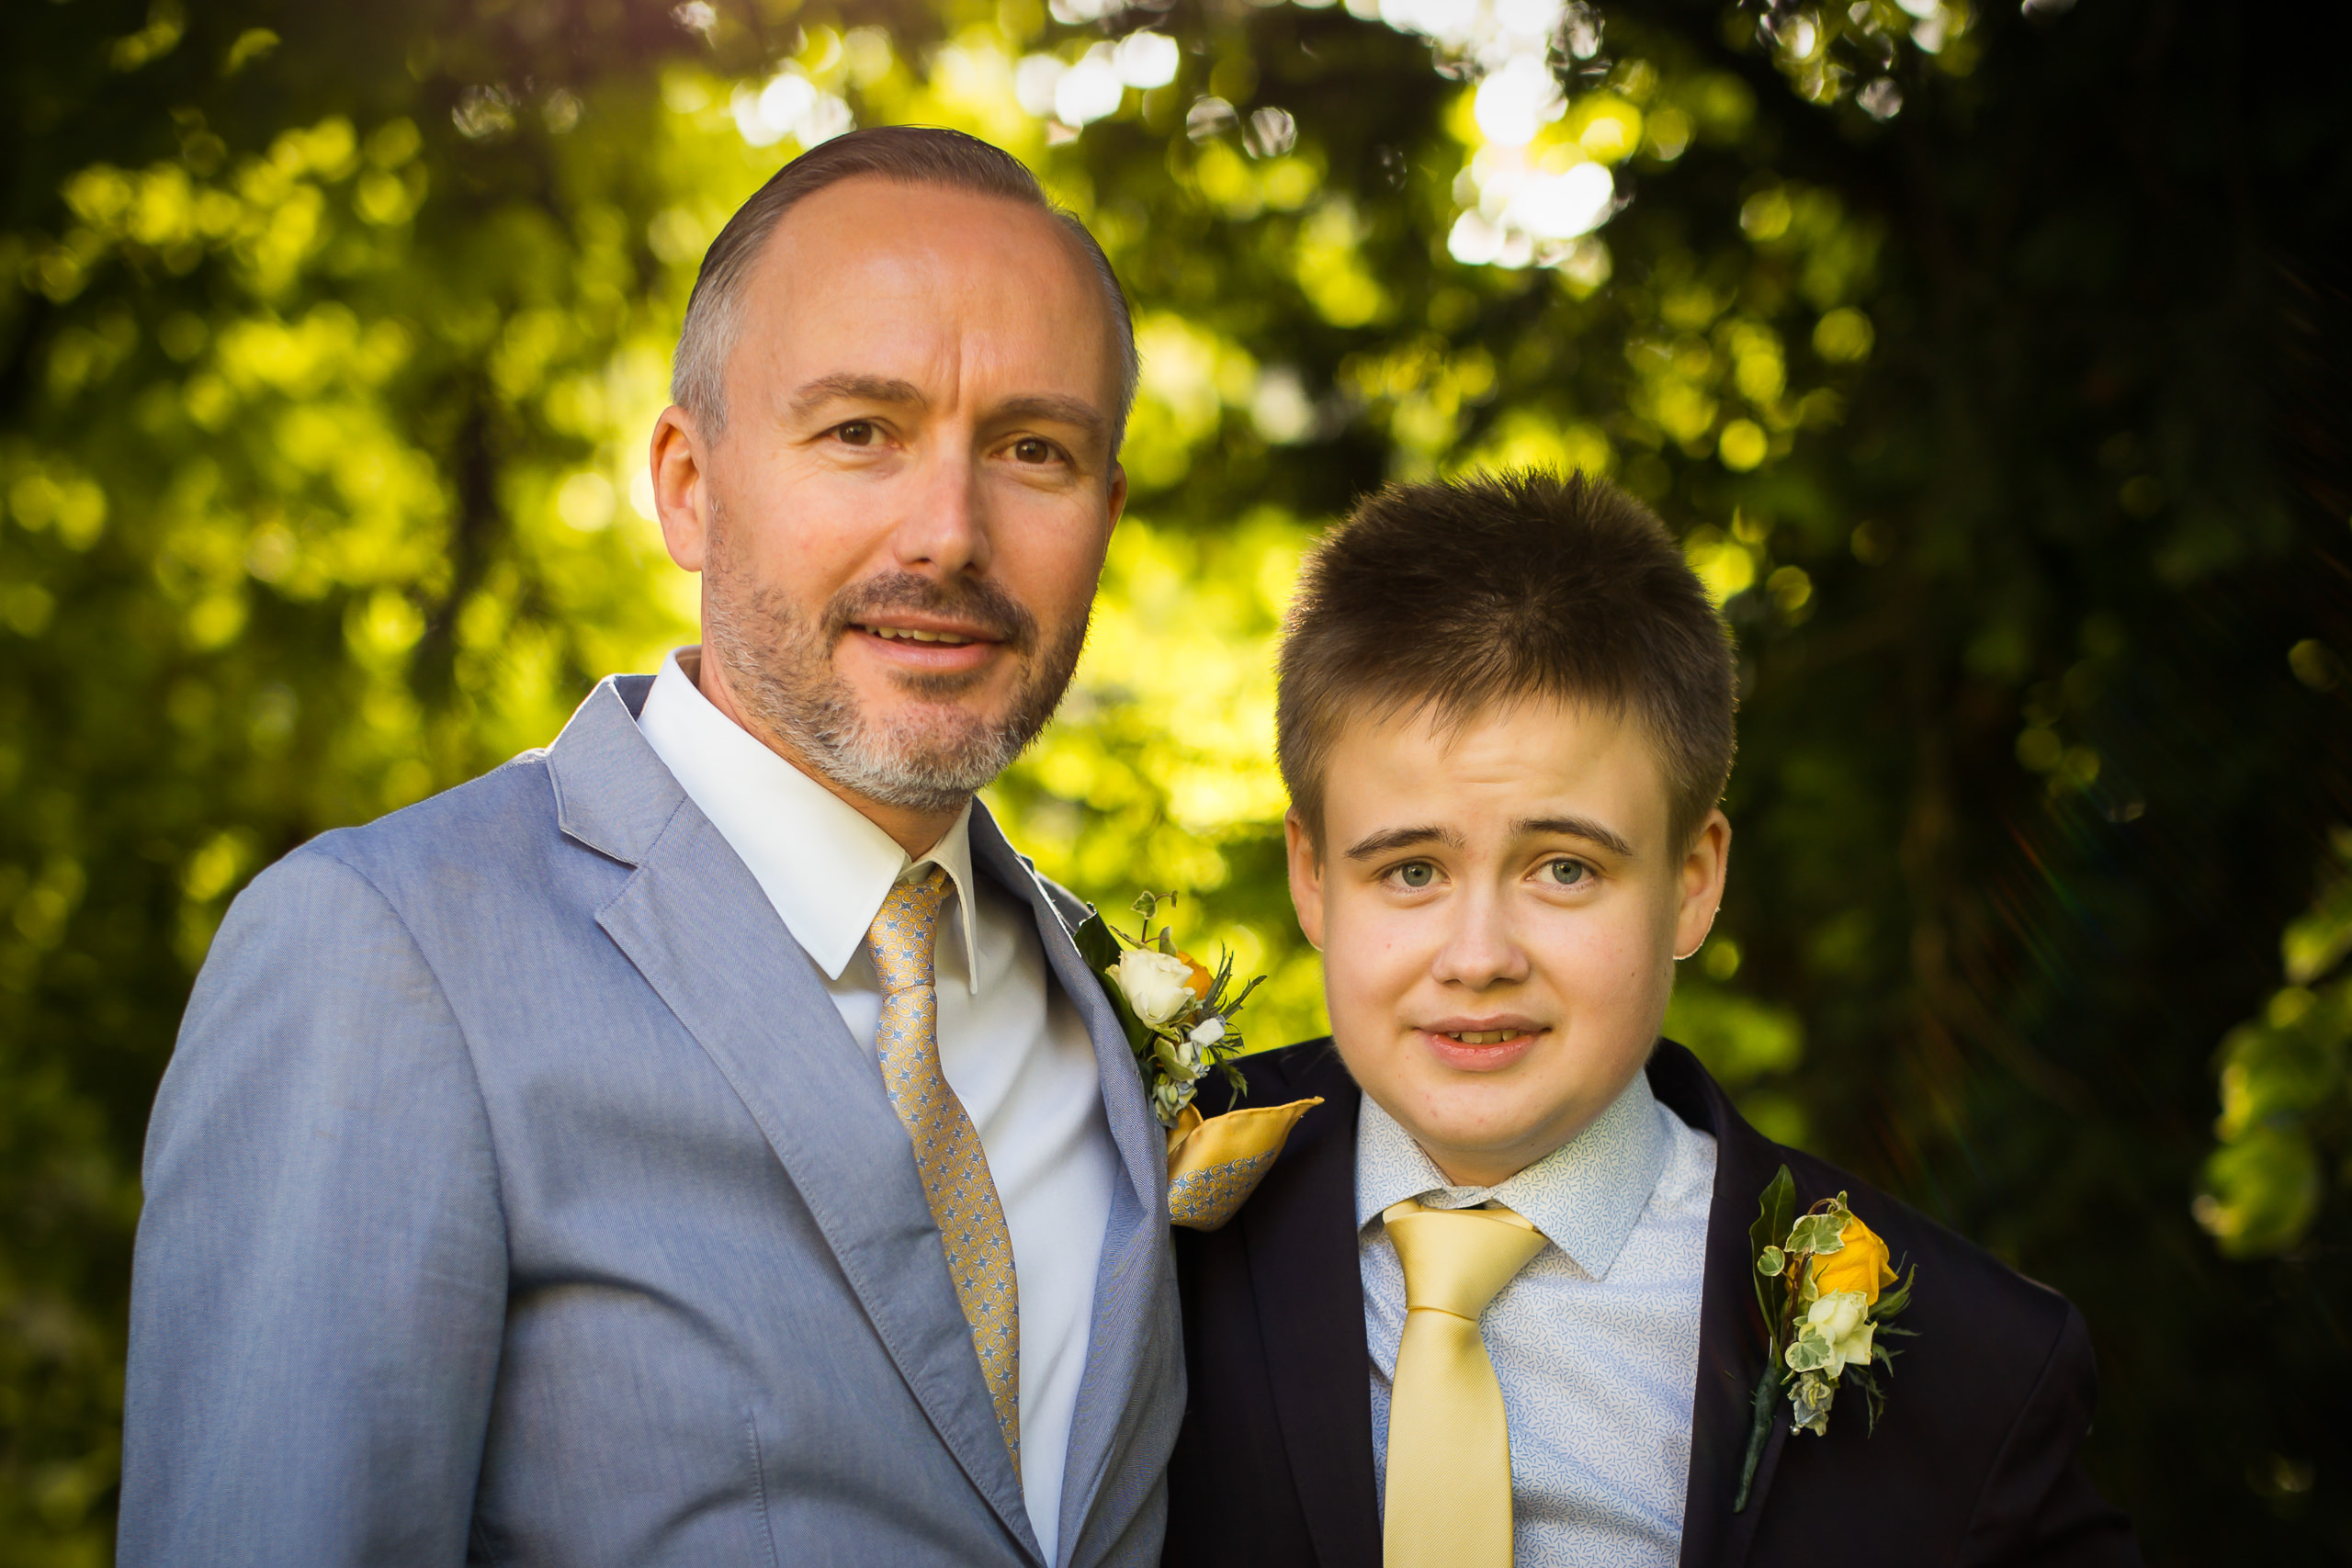 Wedding Gallery Anthony Gemma By Brett Leica Photographer 9